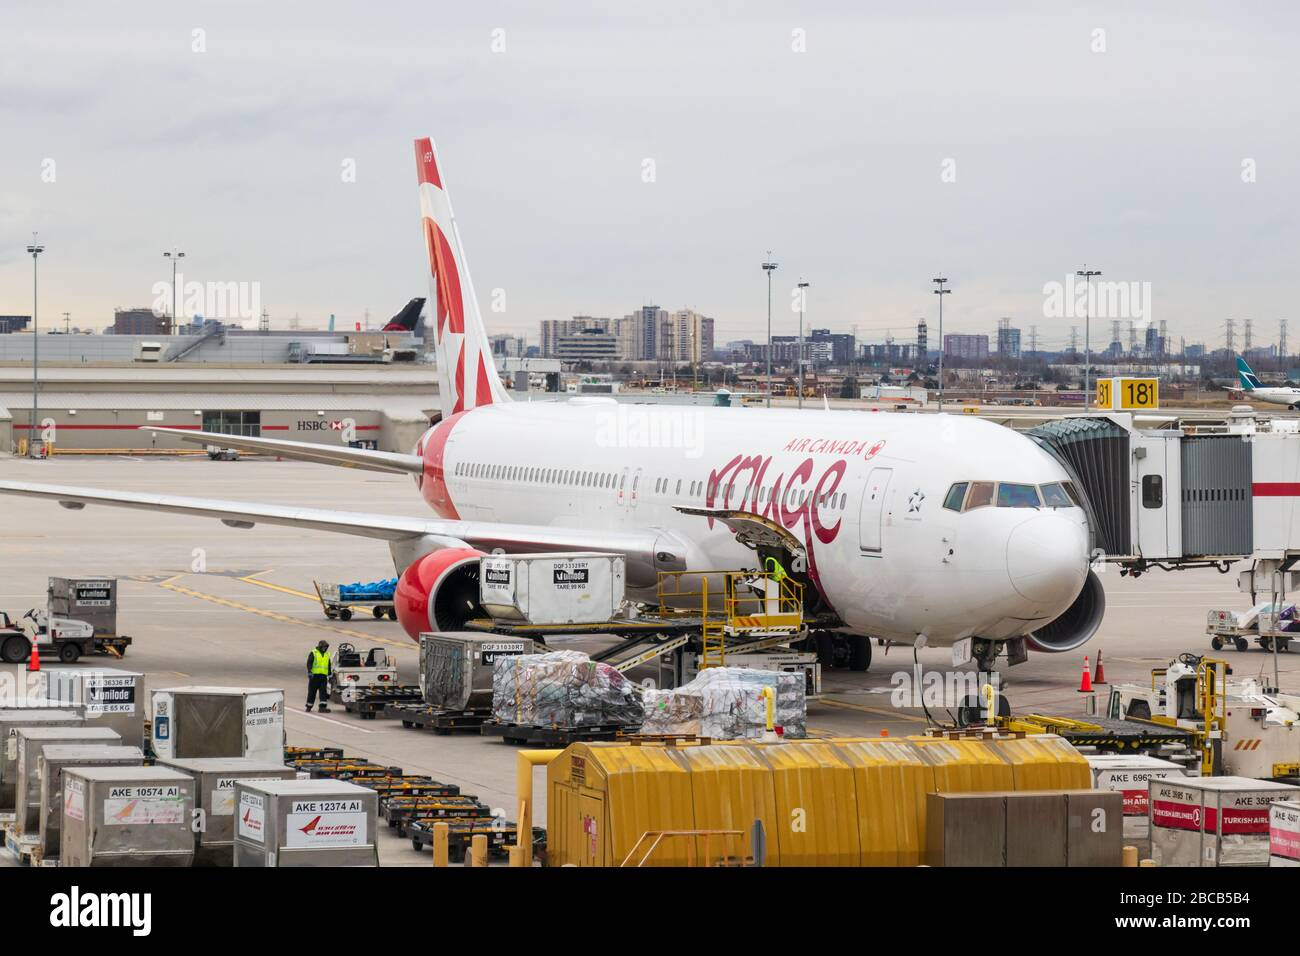 Air Canada Rouge Boeing 767 aircraft is seen at gate being loaded with cargo at Toronto Pearson Intl. Airport. Stock Photo